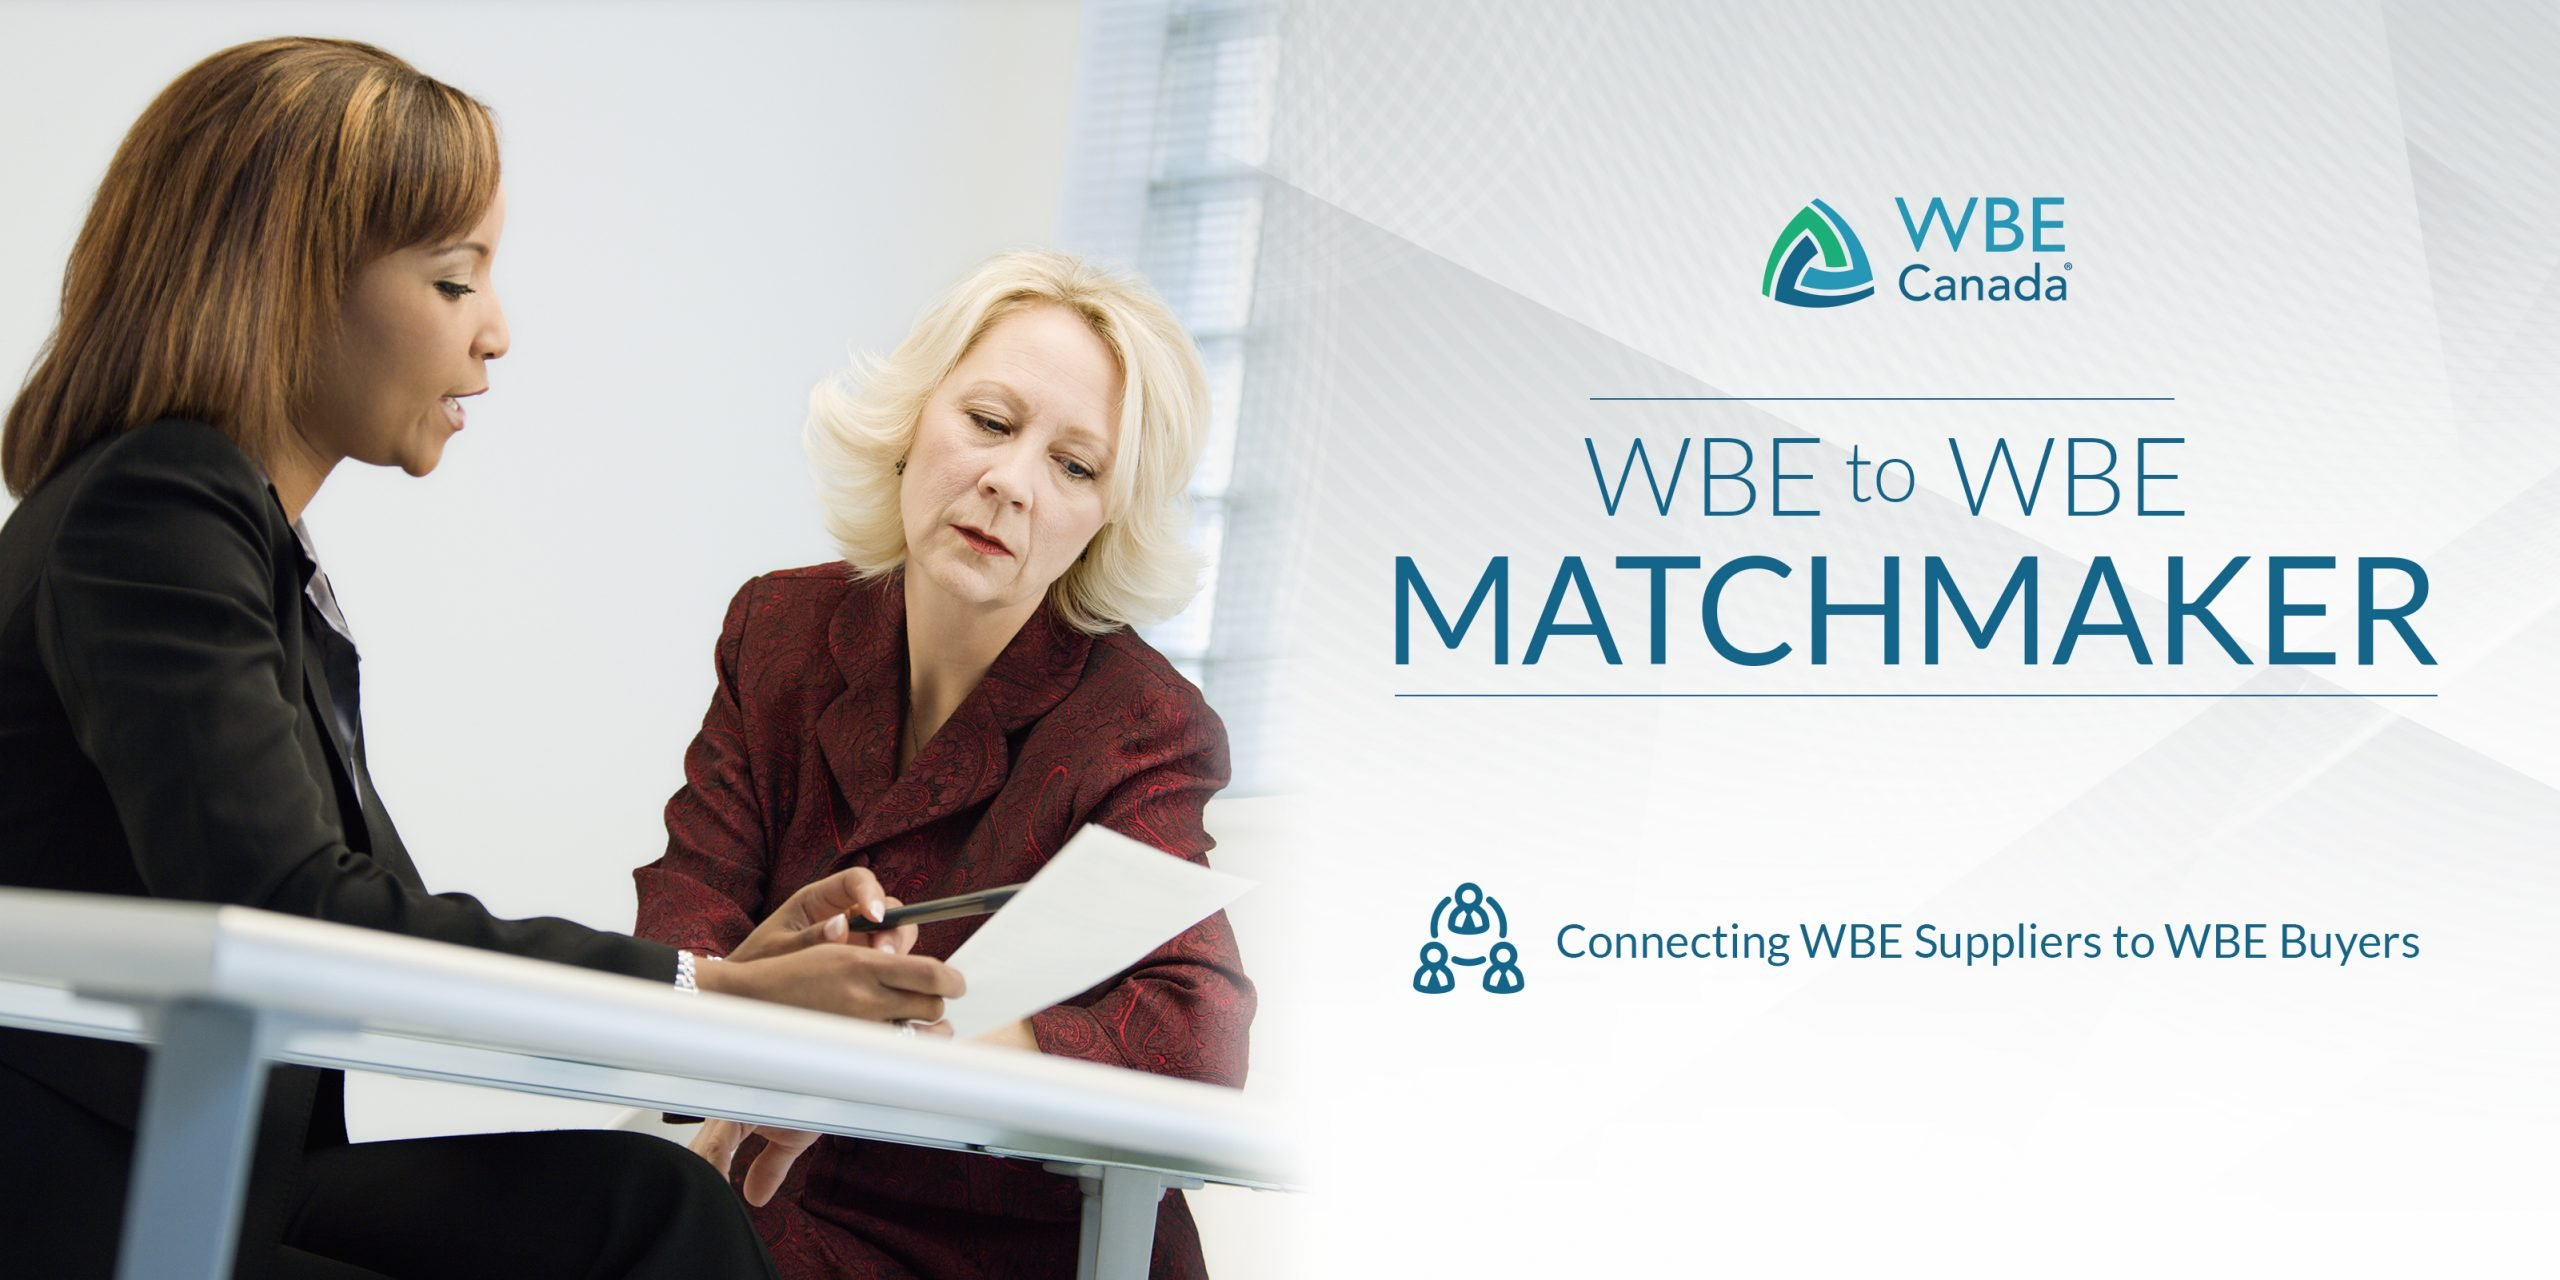 WBE 2 WBE Matchmaker